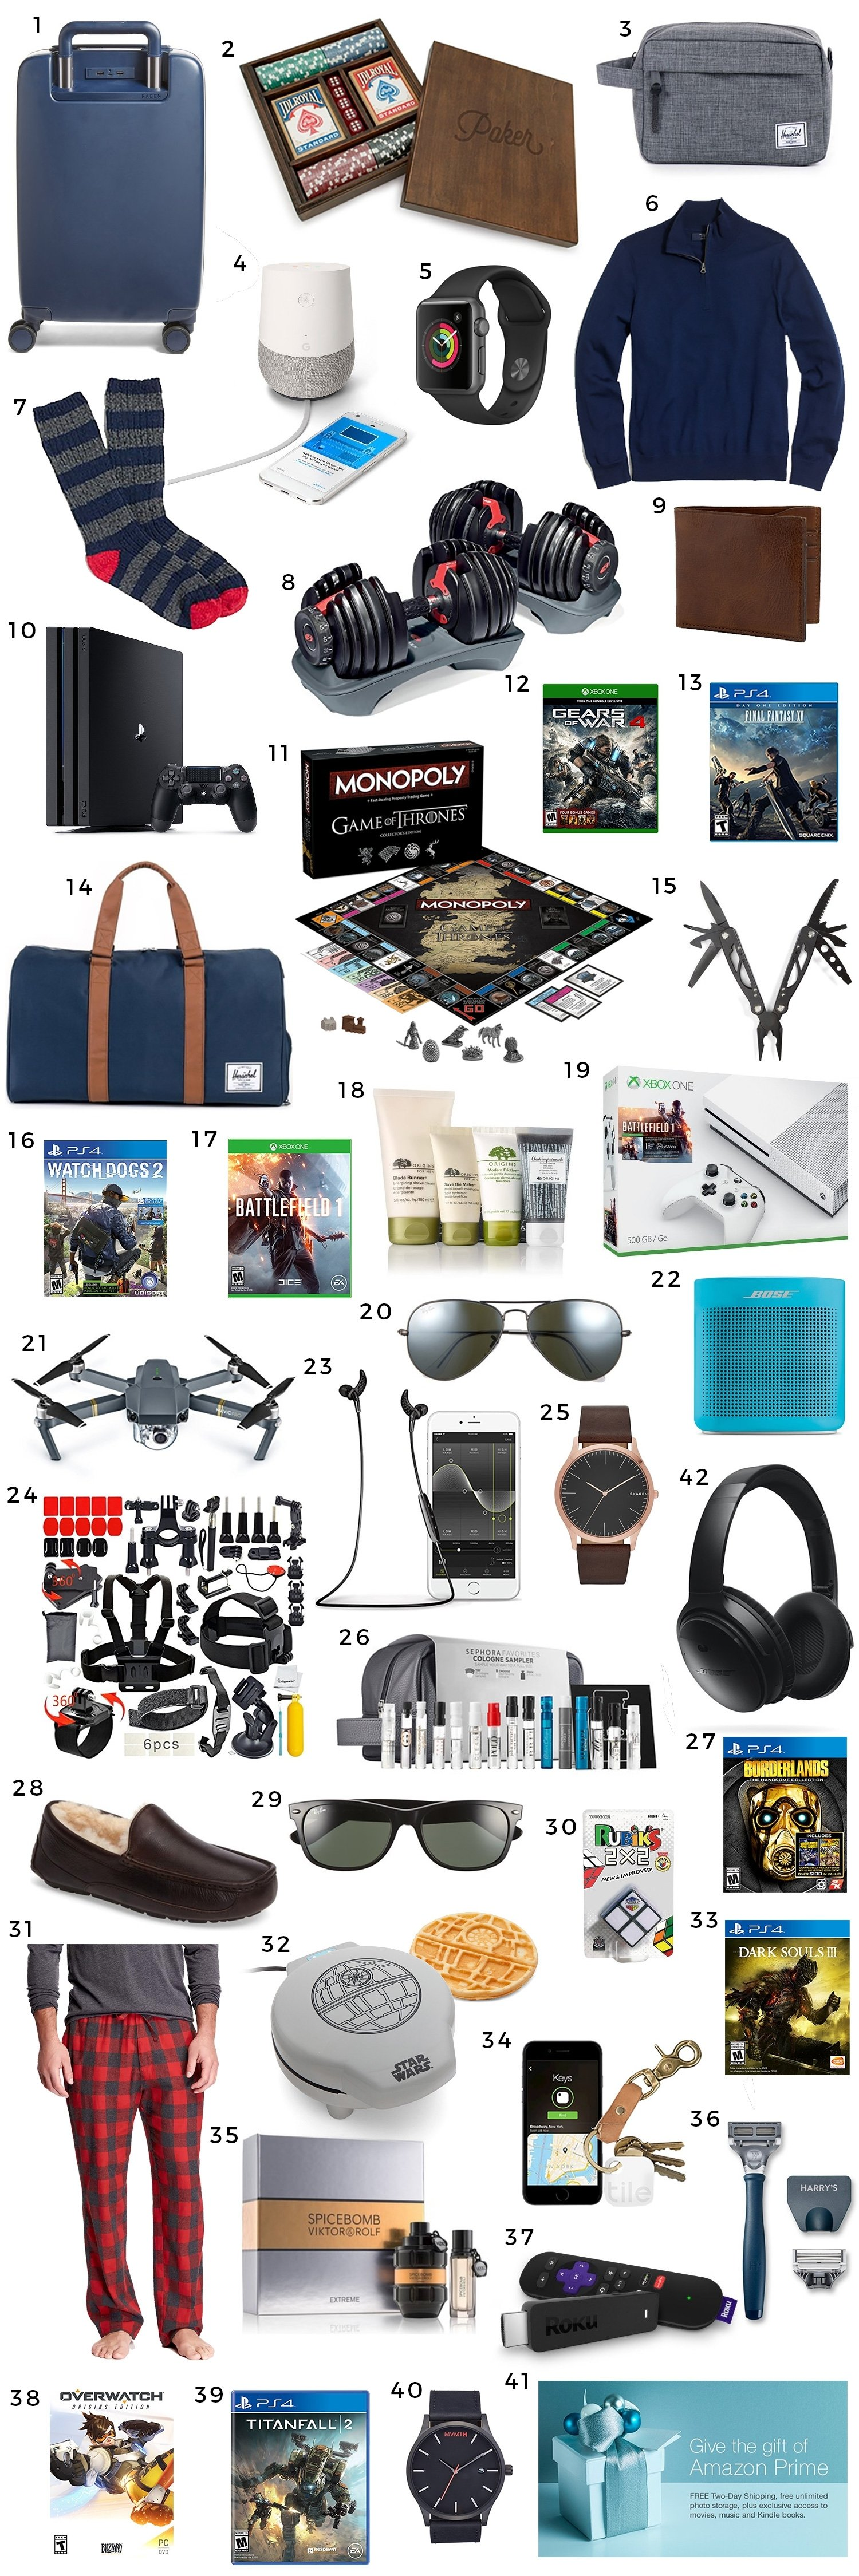 Christmas Gift Ideas Under 50 For Him Gallery